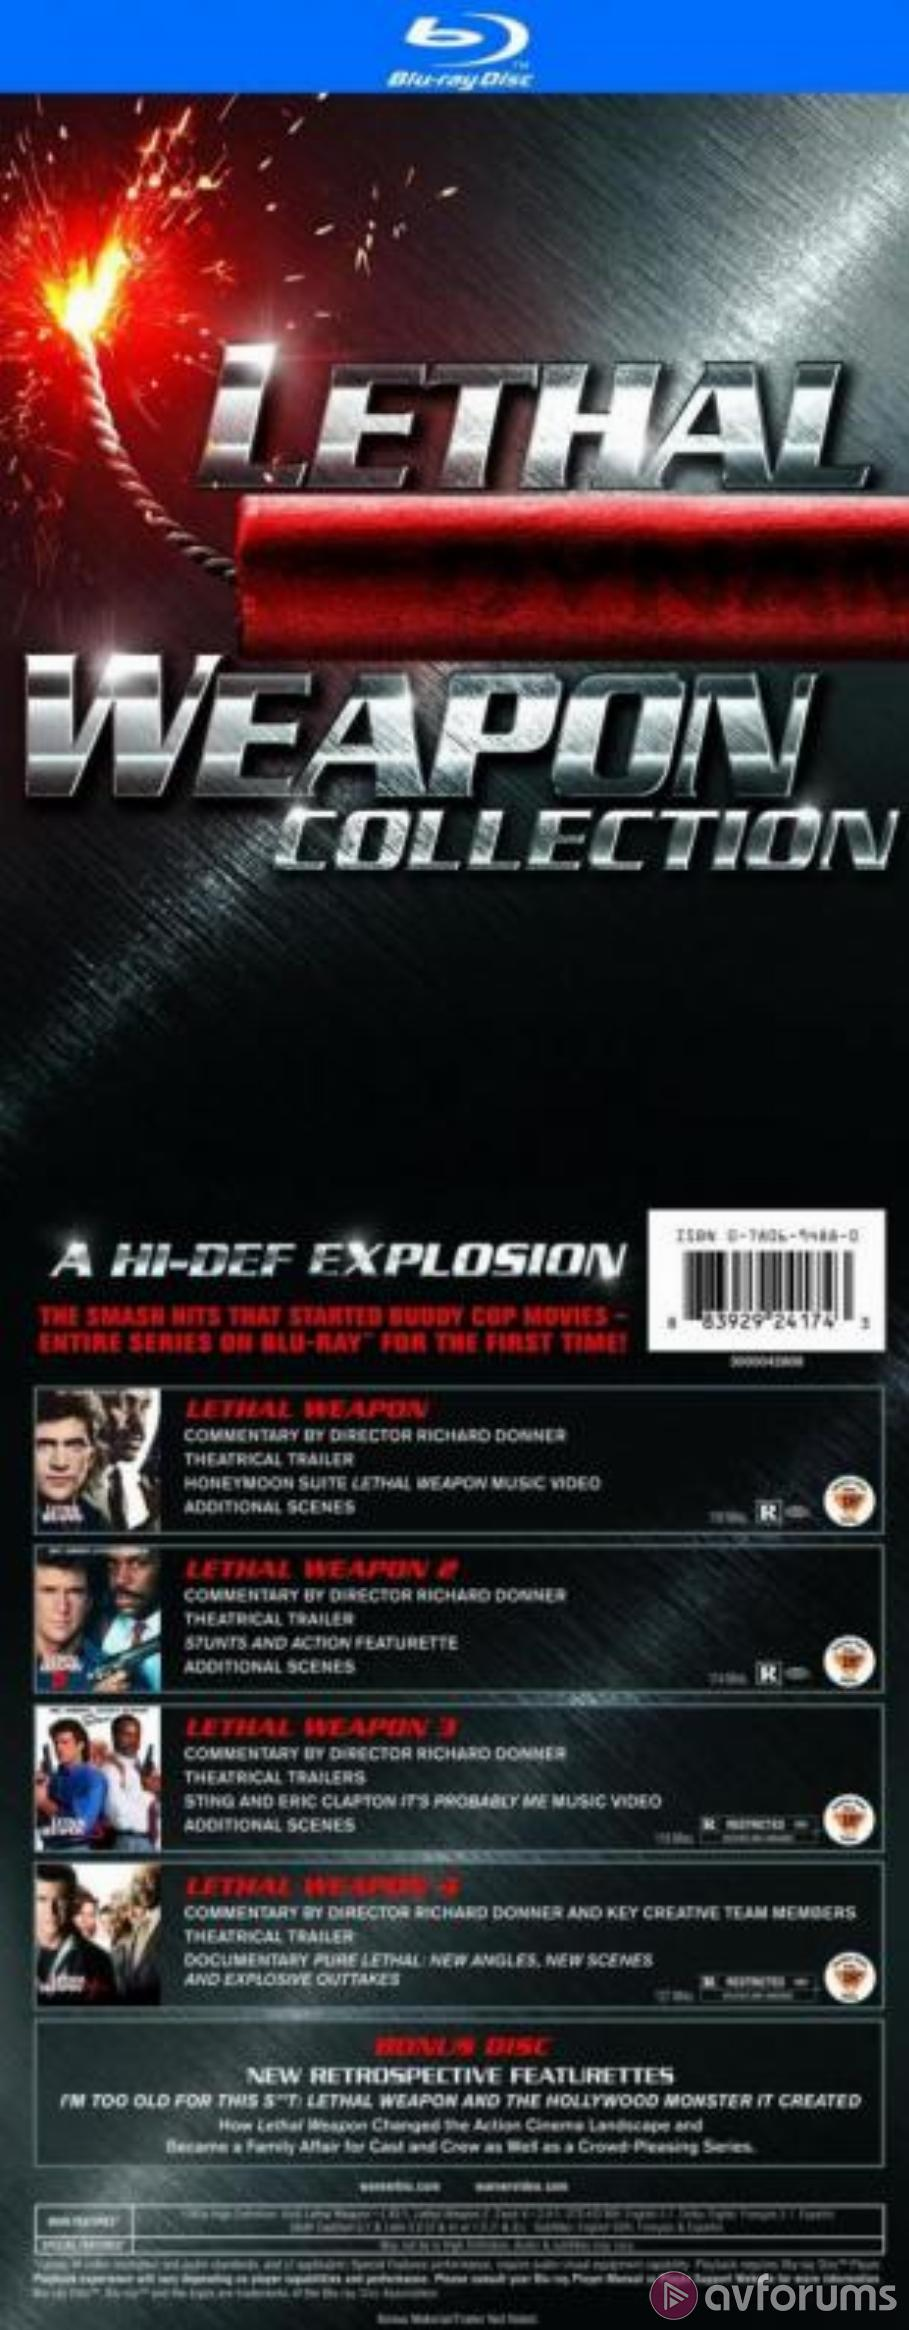 Lethal Weapon 3 (Lethal Weapon Collection) Blu-ray Review